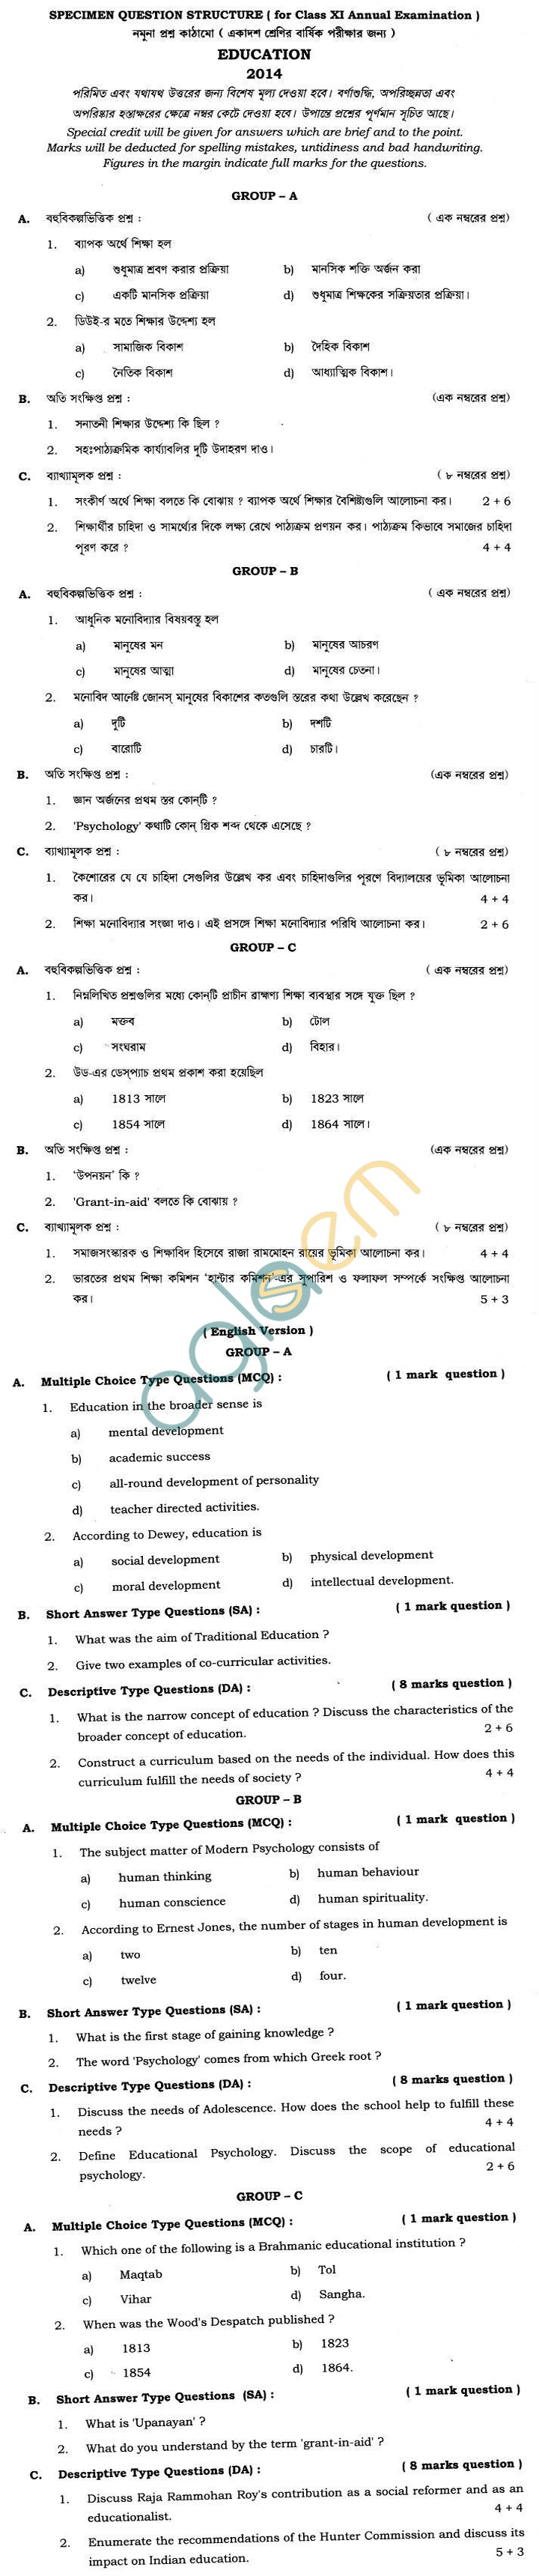 West Bengal Board Sample Question Paper for Class 11 - Education